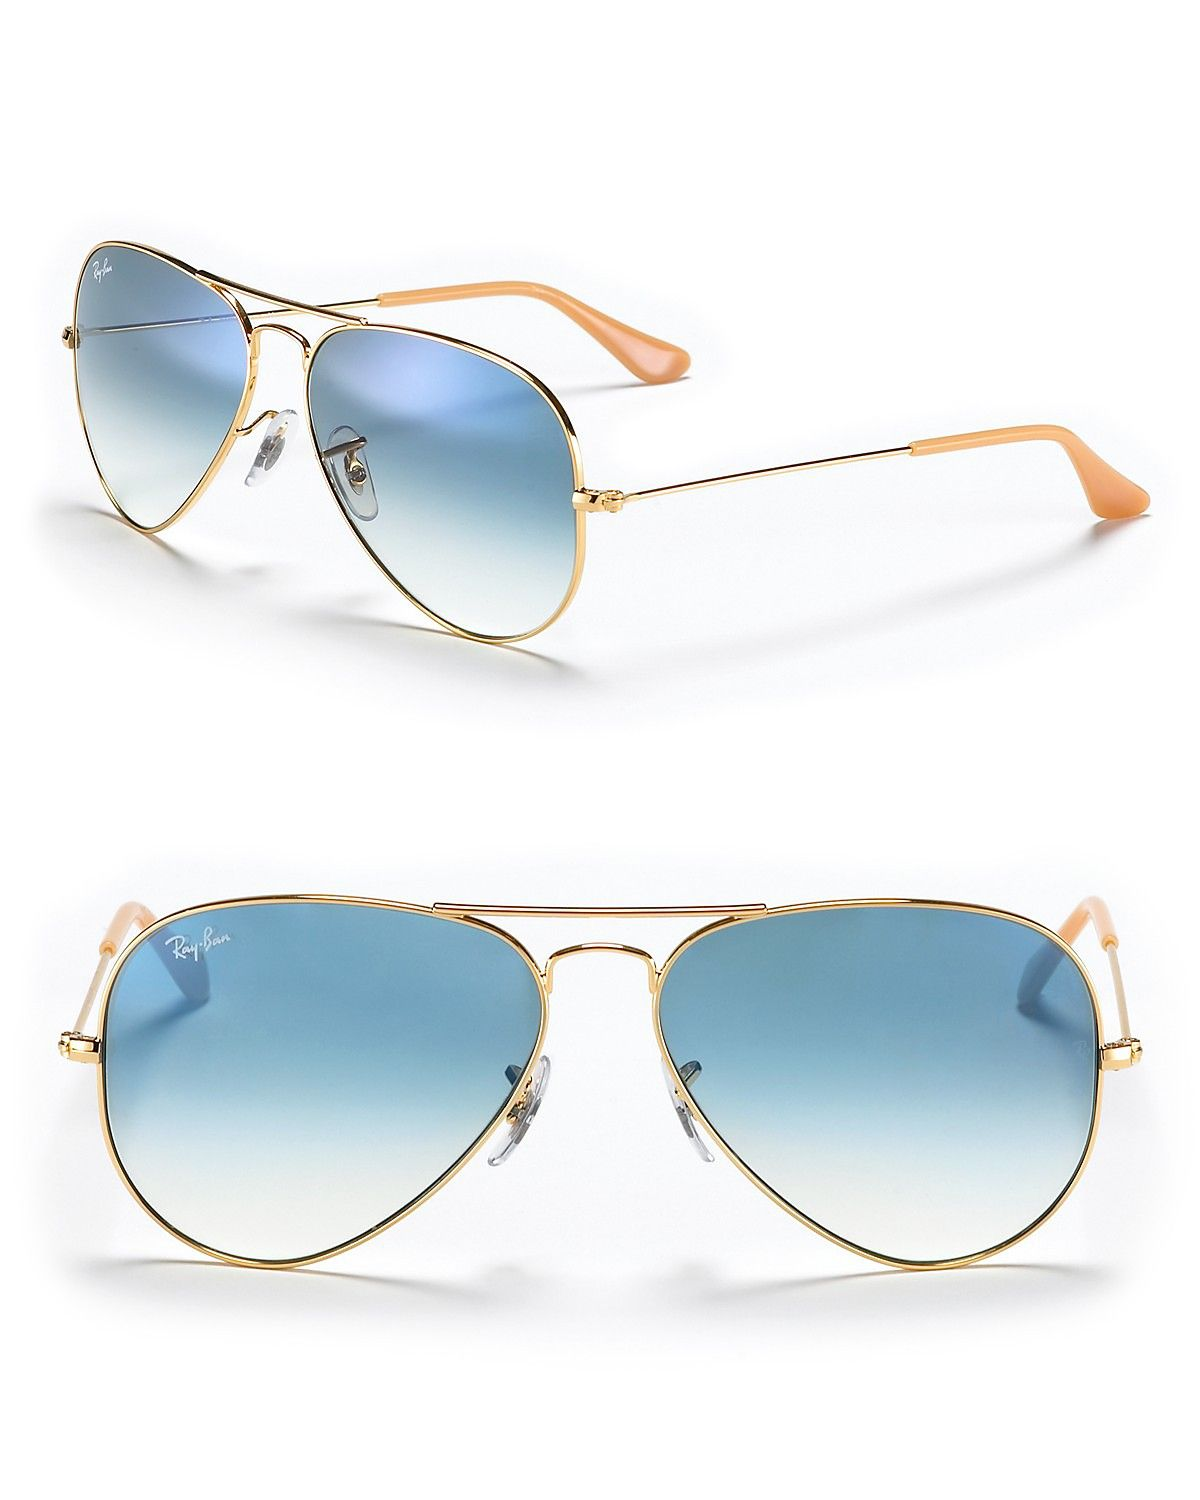 ray ban new aviator  78+ images about ray ban sunglasses on pinterest